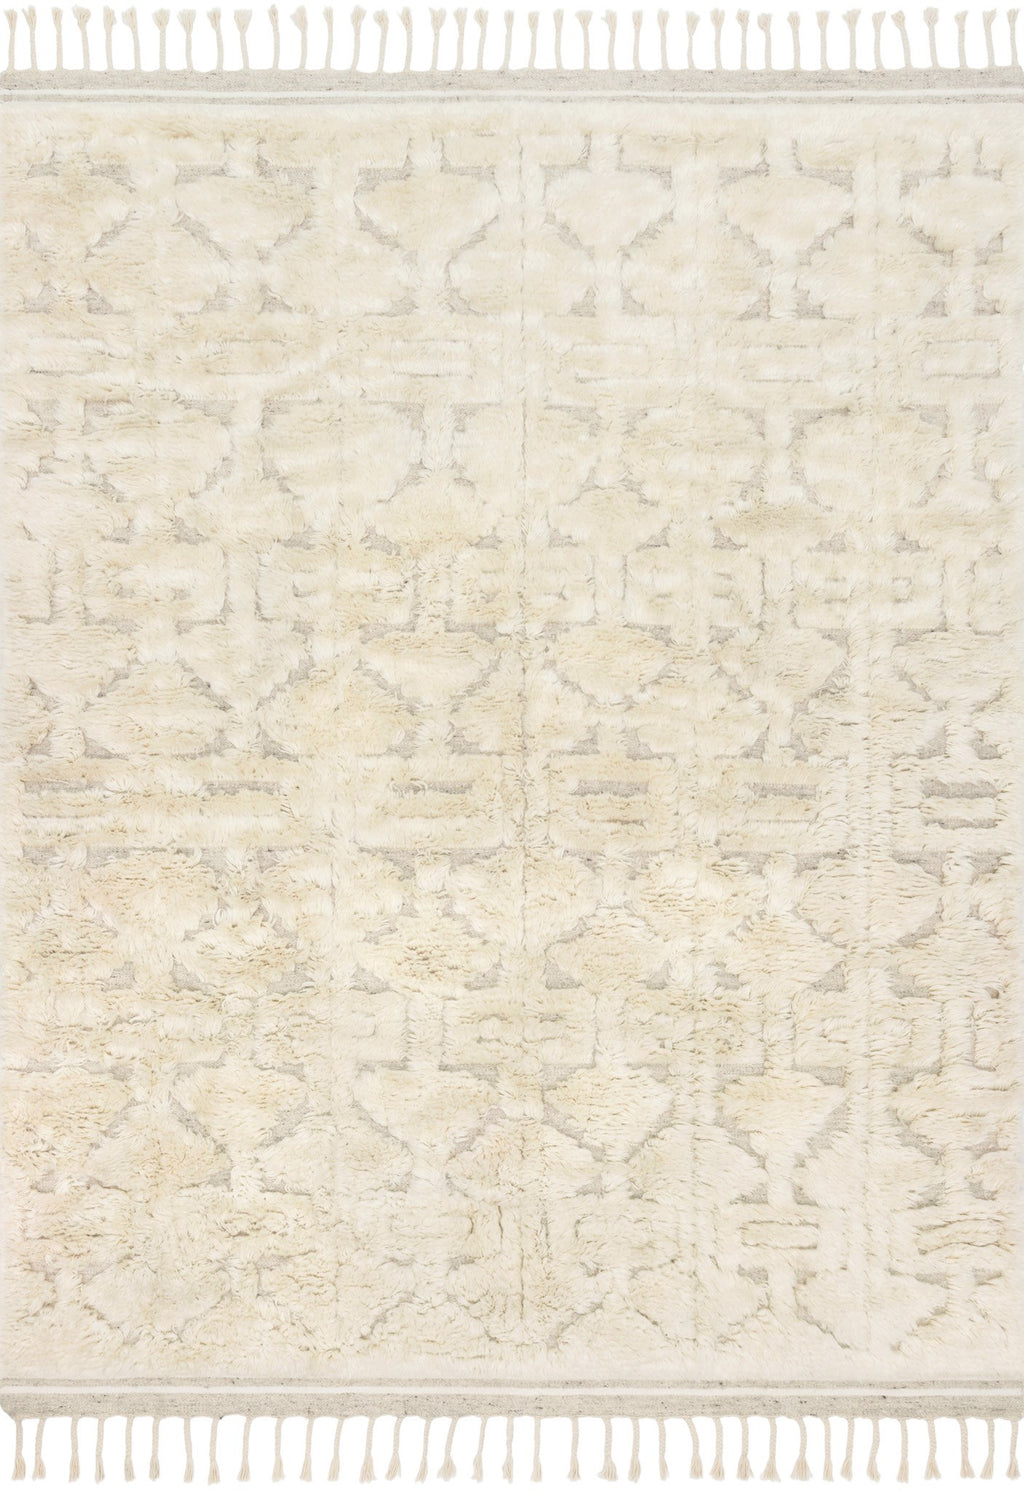 HYGGE Collection Wool Rug  in  OATMEAL / IVORY Beige Small Hand-Loomed Wool